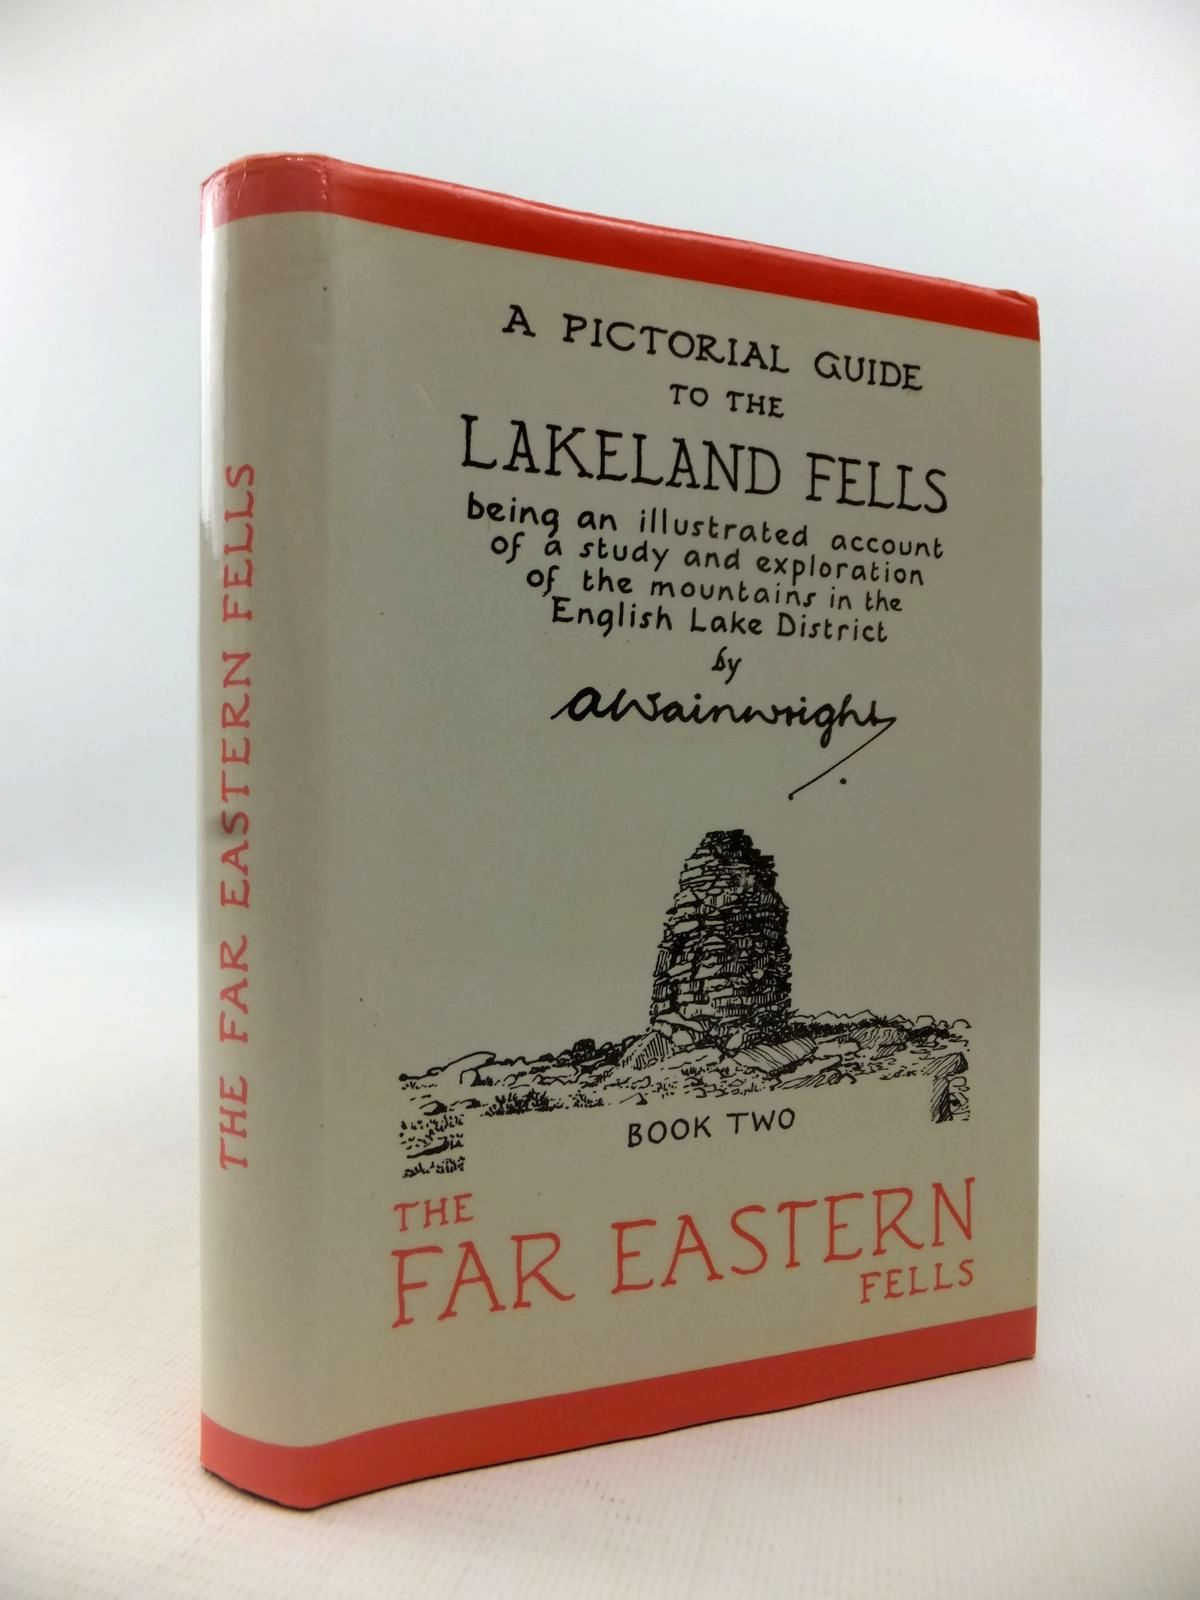 Photo of A PICTORIAL GUIDE TO THE LAKELAND FELLS BOOK TWO THE FAR EASTERN FELLS written by Wainwright, A. illustrated by Wainwright, A. published by Westmorland Gazette (STOCK CODE: 1813235)  for sale by Stella & Rose's Books